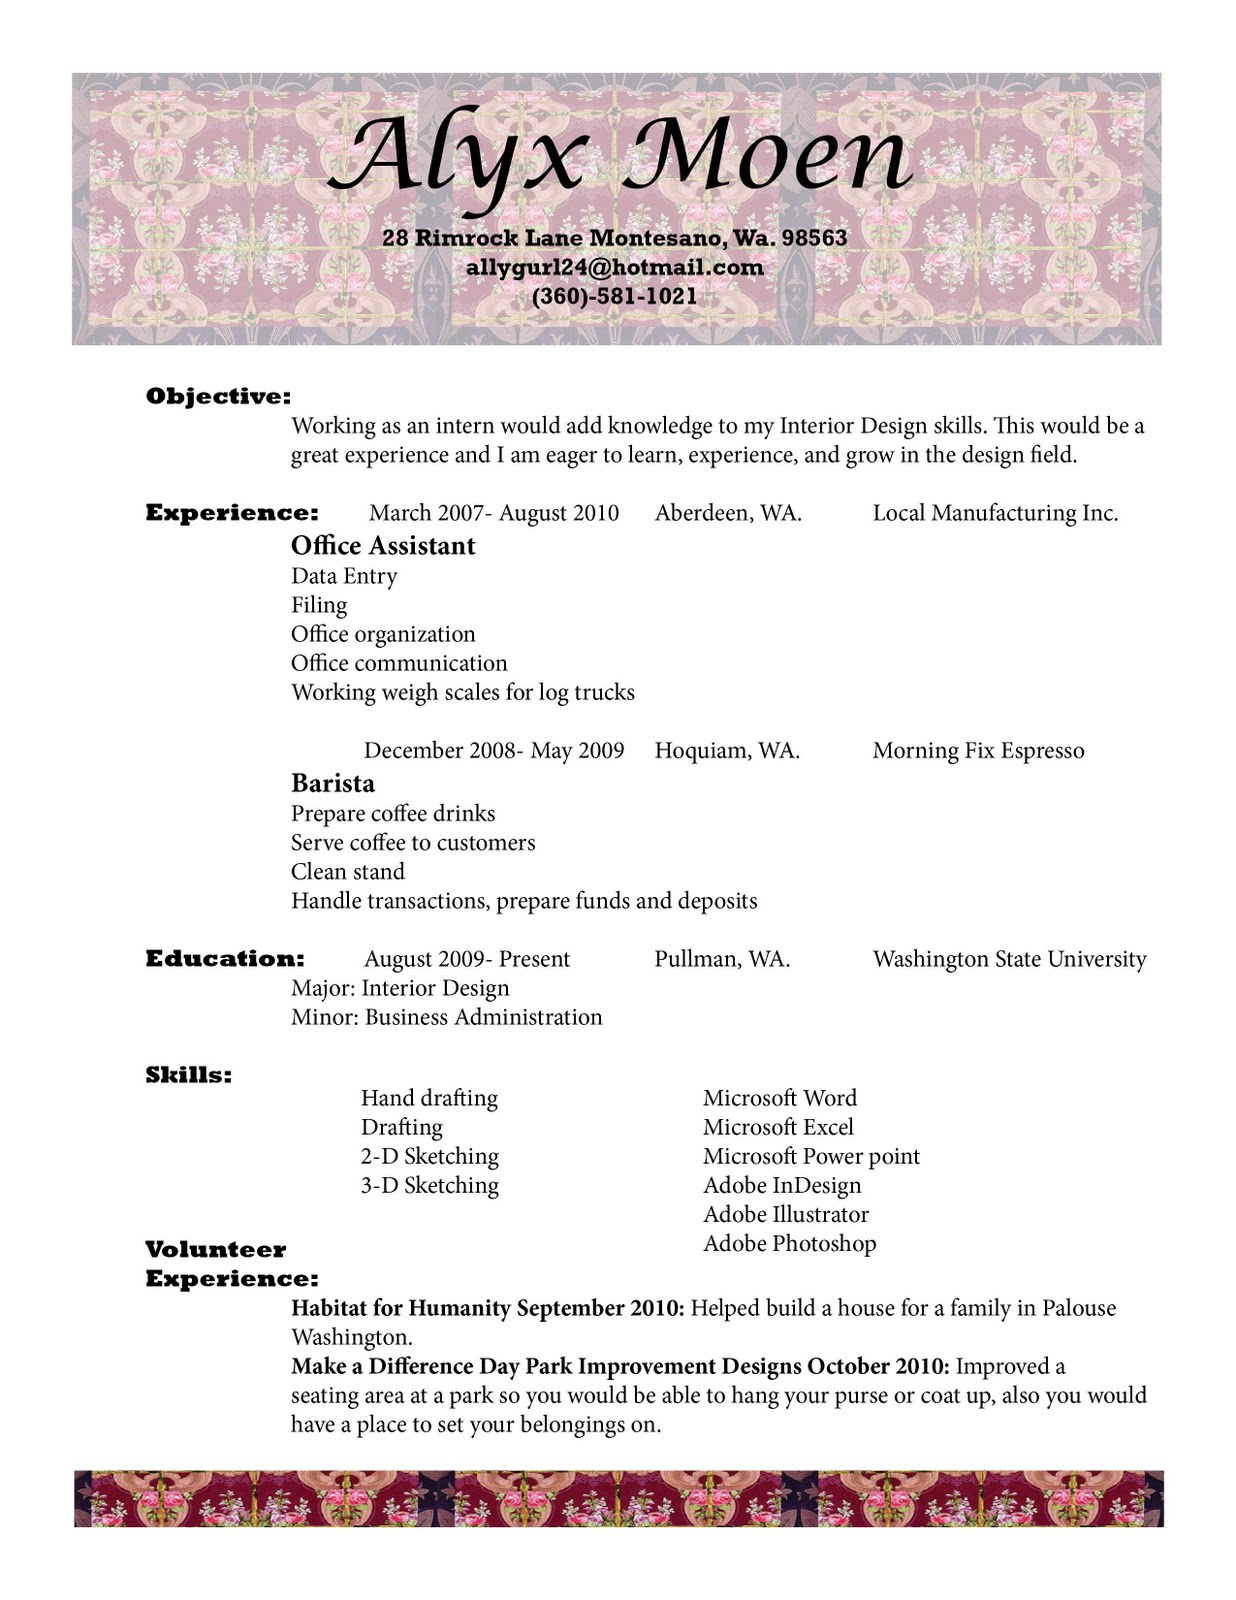 Comfortable 1 Year Experience Resume Format For Software Developer Thick 100 Dollar Bill Template Flat 11x17 Graph Paper Template 2 Page Resume Format For Experienced Youthful 2 Page Resume Header Sample Orange2014 Calendar Template Excel Three Major Types Of Resumes | Sponsorship Request Email